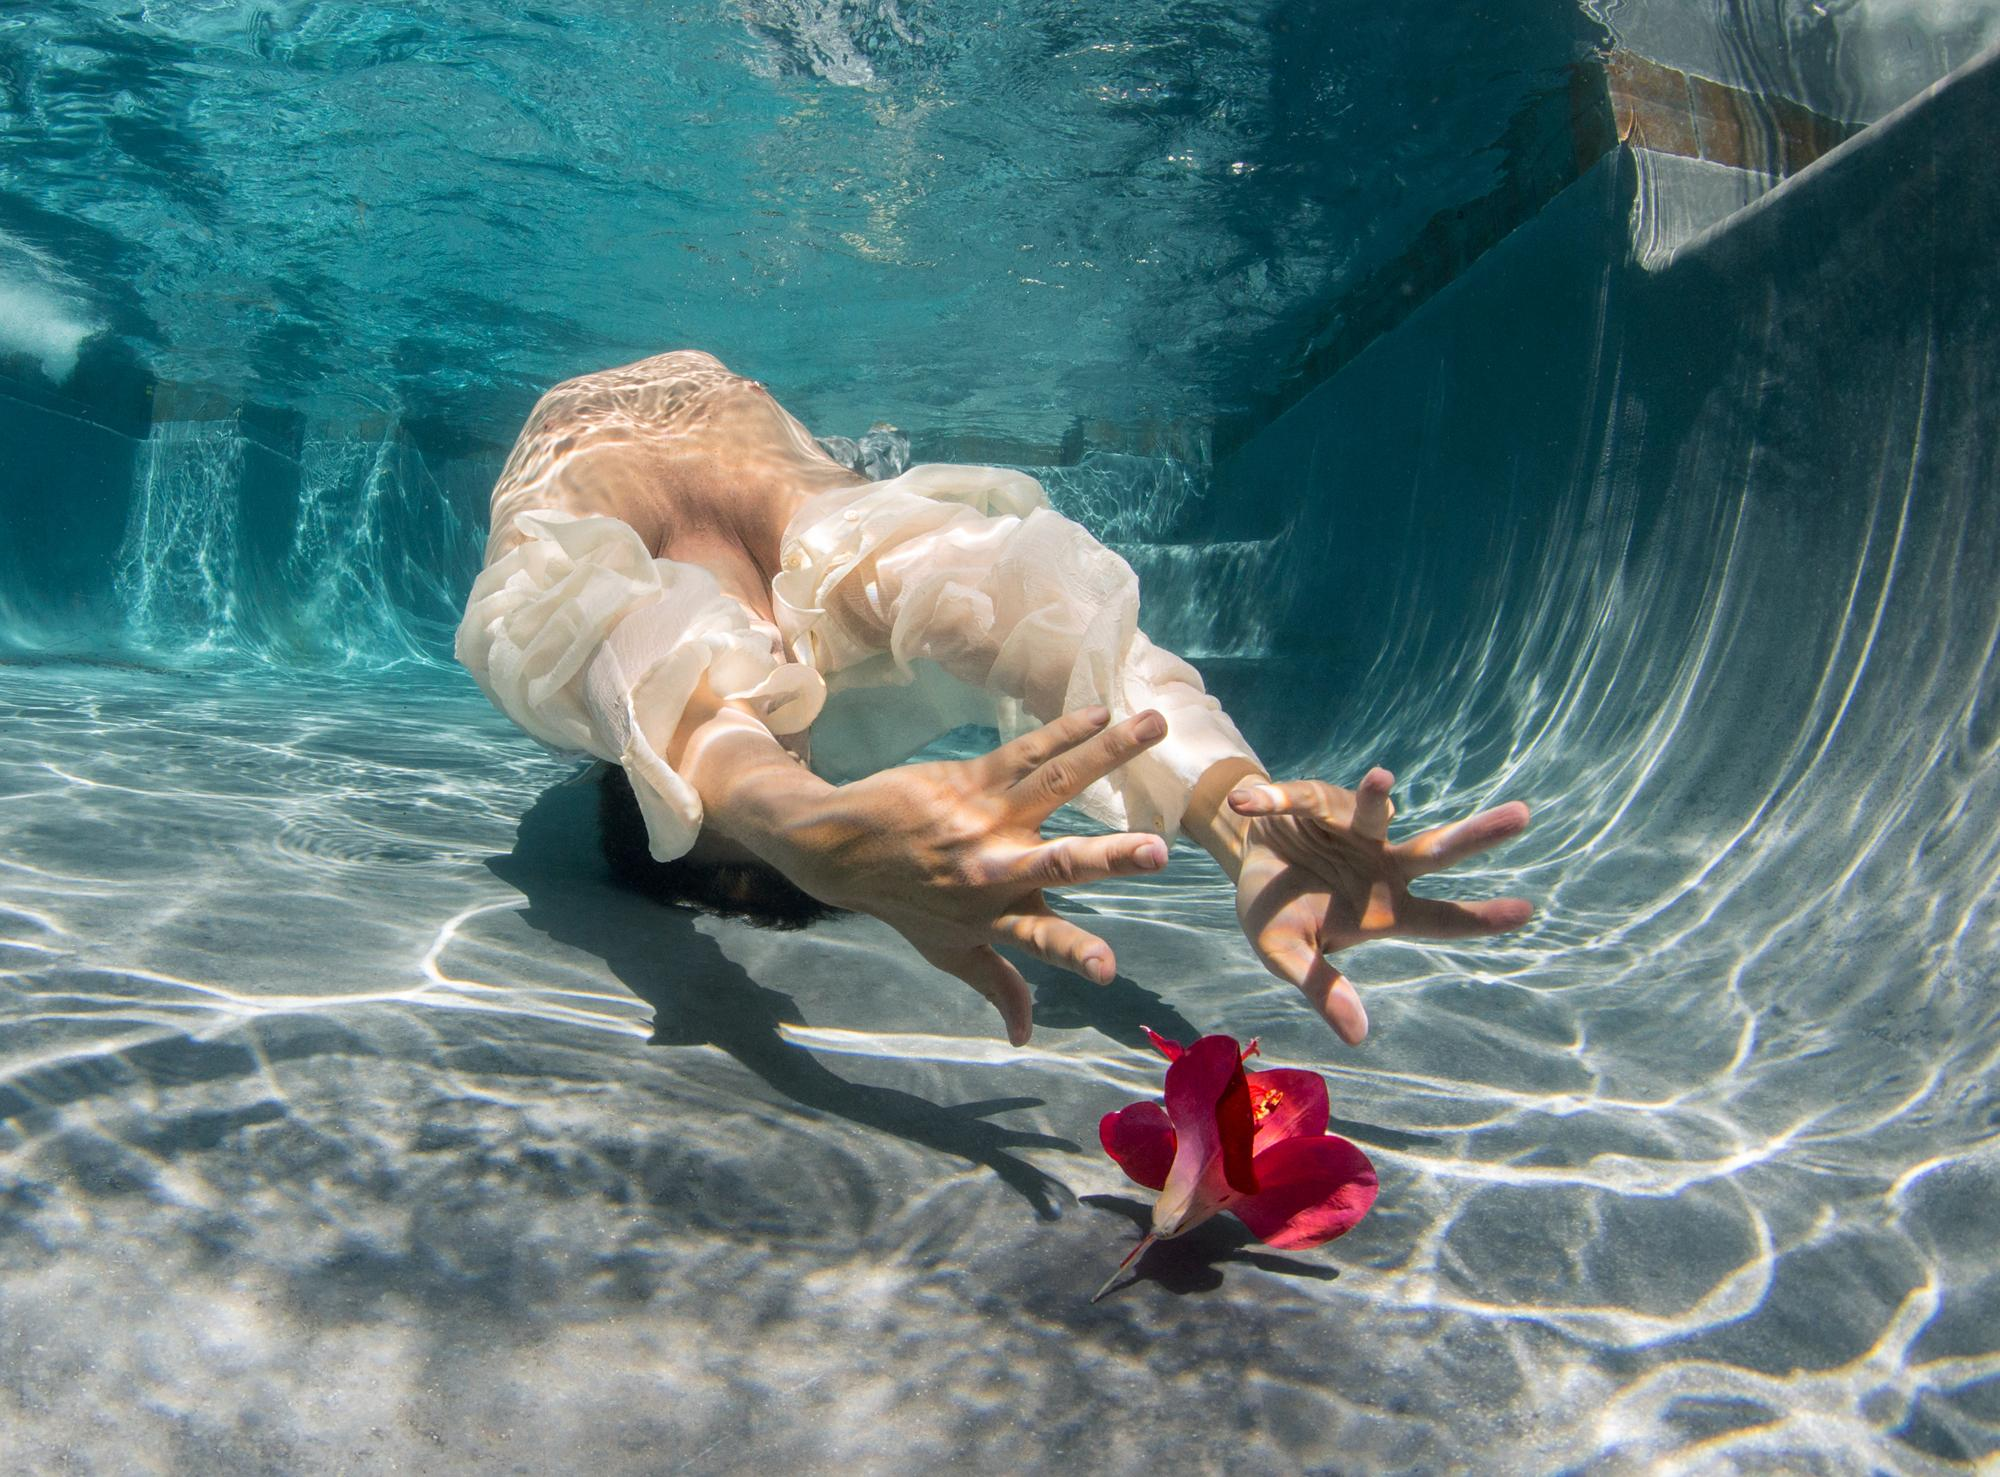 Cold Song II - underwater photograph - print on aluminum